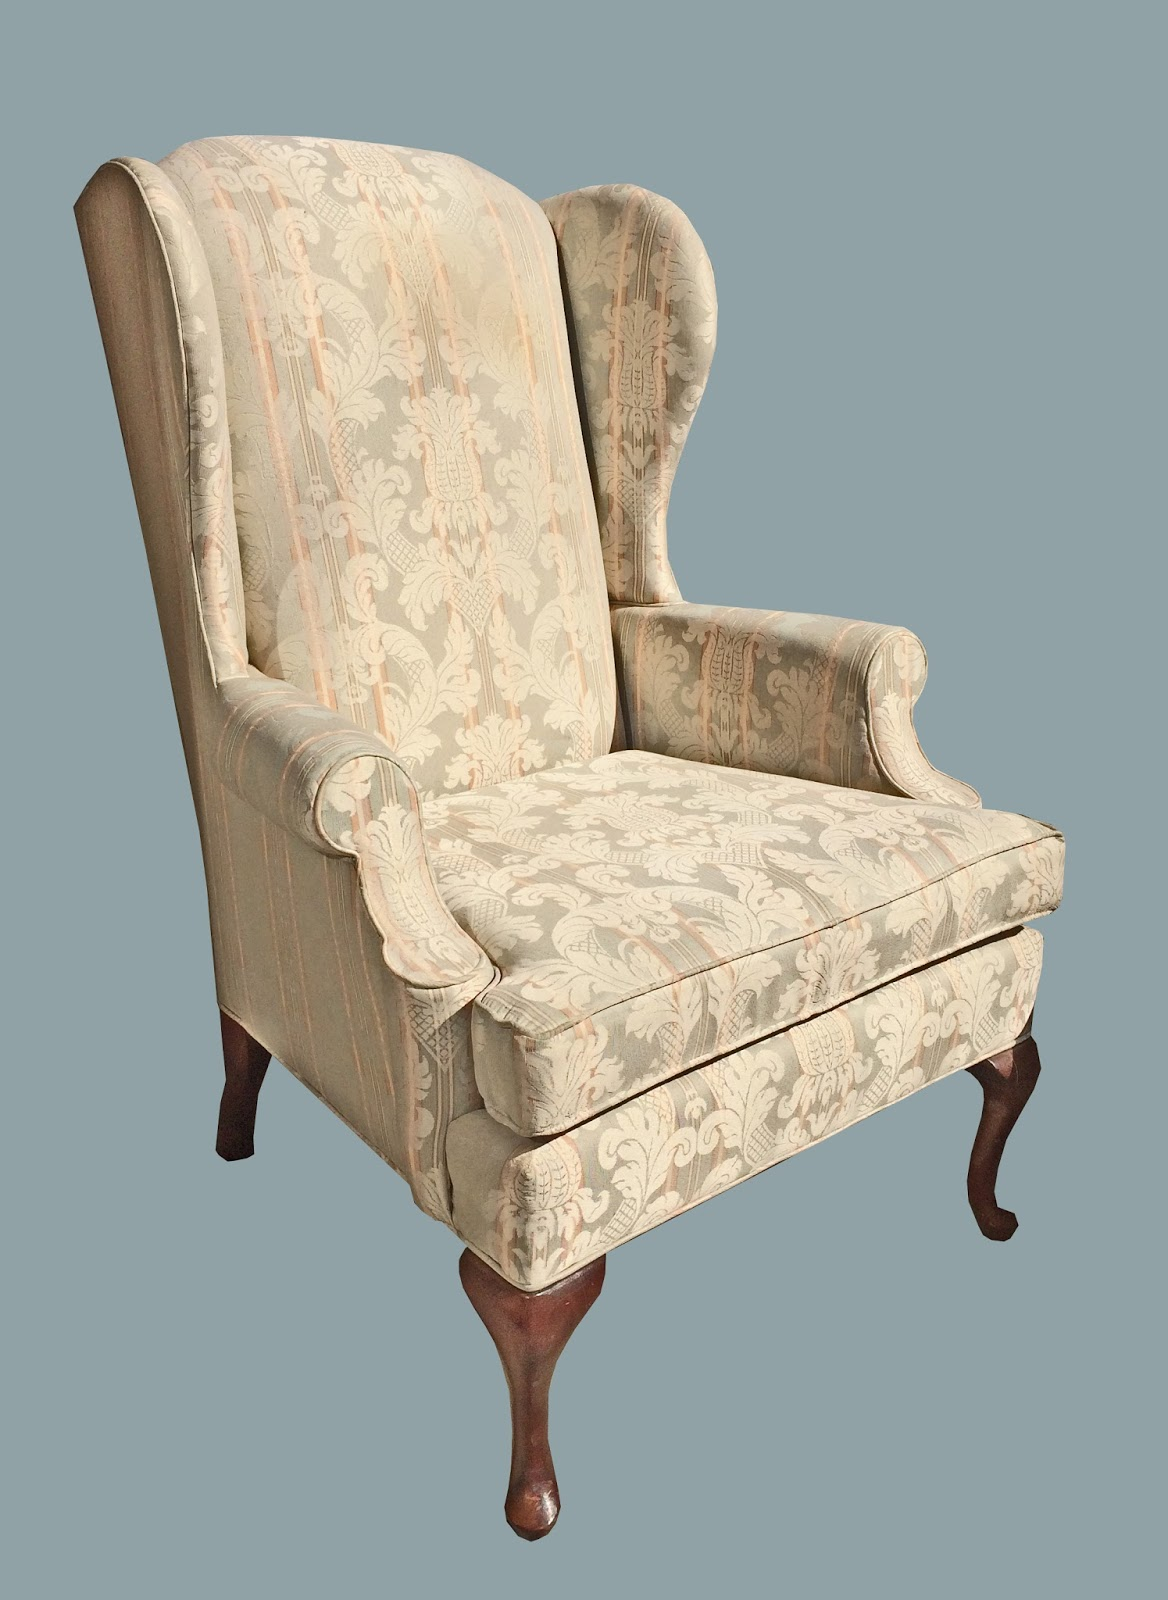 Uhuru Furniture & Collectibles: Classic Wingback Chair in ...